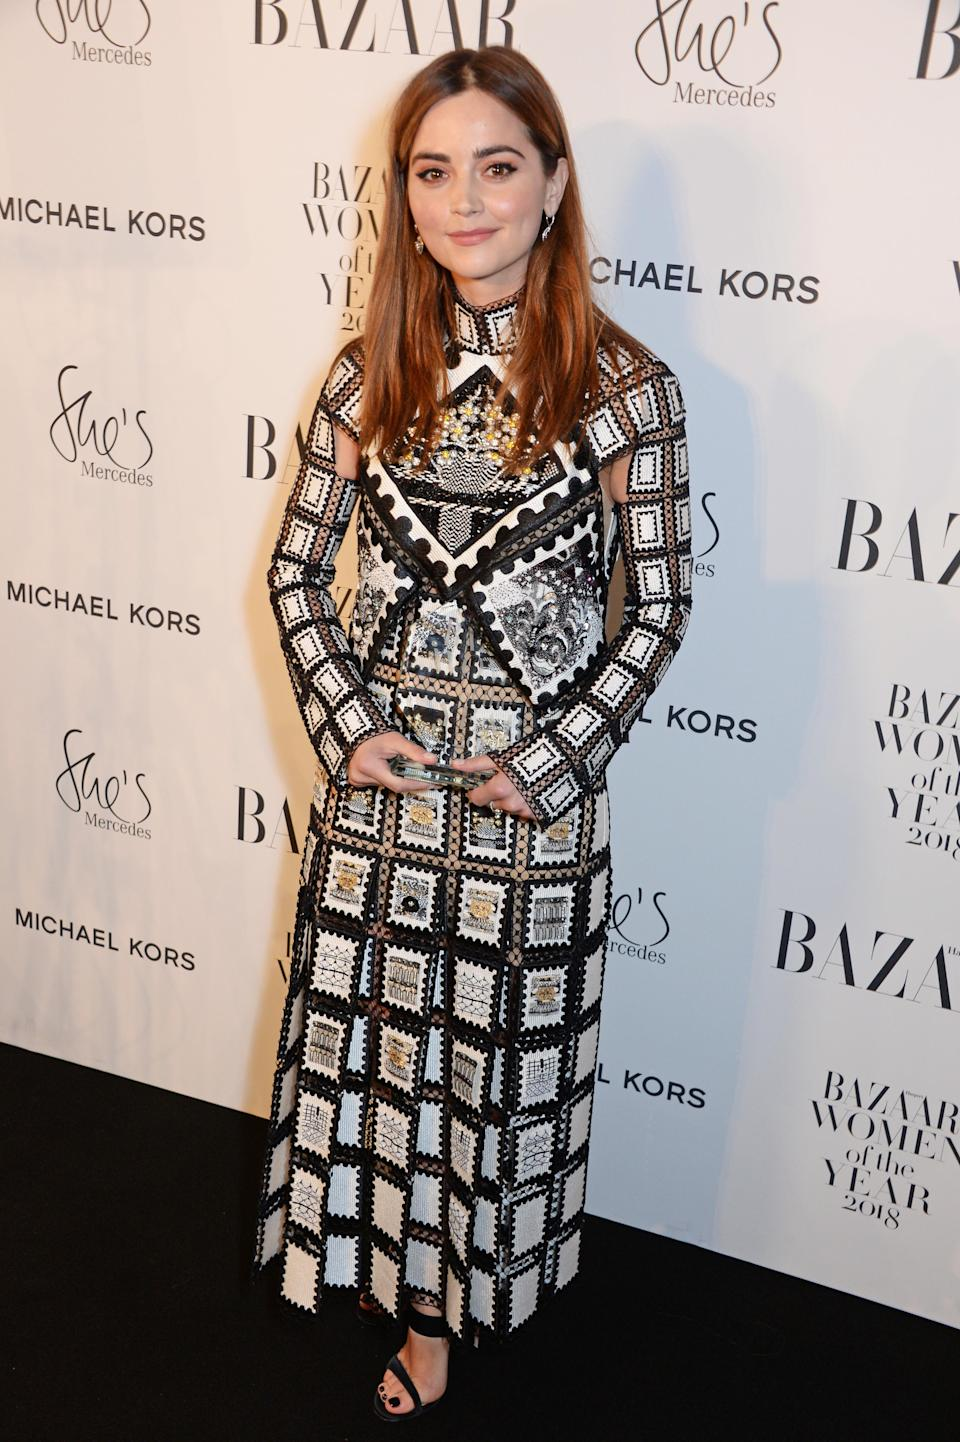 <p>Jenna, who most recently starred in hit BBC series 'The Cry'<em>,</em> accepted the award for Best TV Actress at the Harper's Bazaar awards ceremony. She wore a beaded Mary Katranzou maxi dress last night at the awards in London. <em>[Photo: Getty]</em> </p>